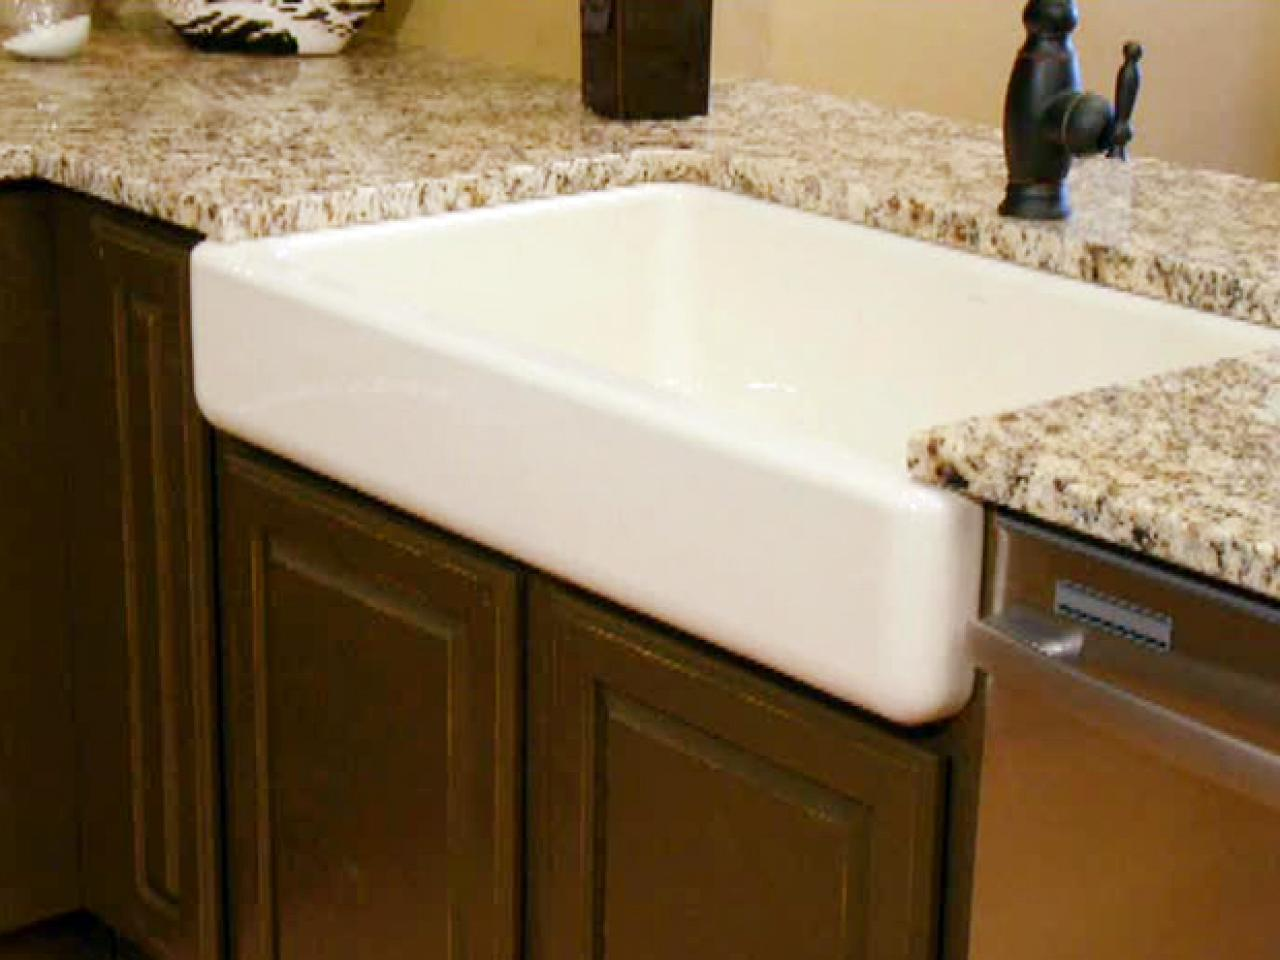 Apron front kitchen sink how tos diy - Kitchen sinks apron front ...